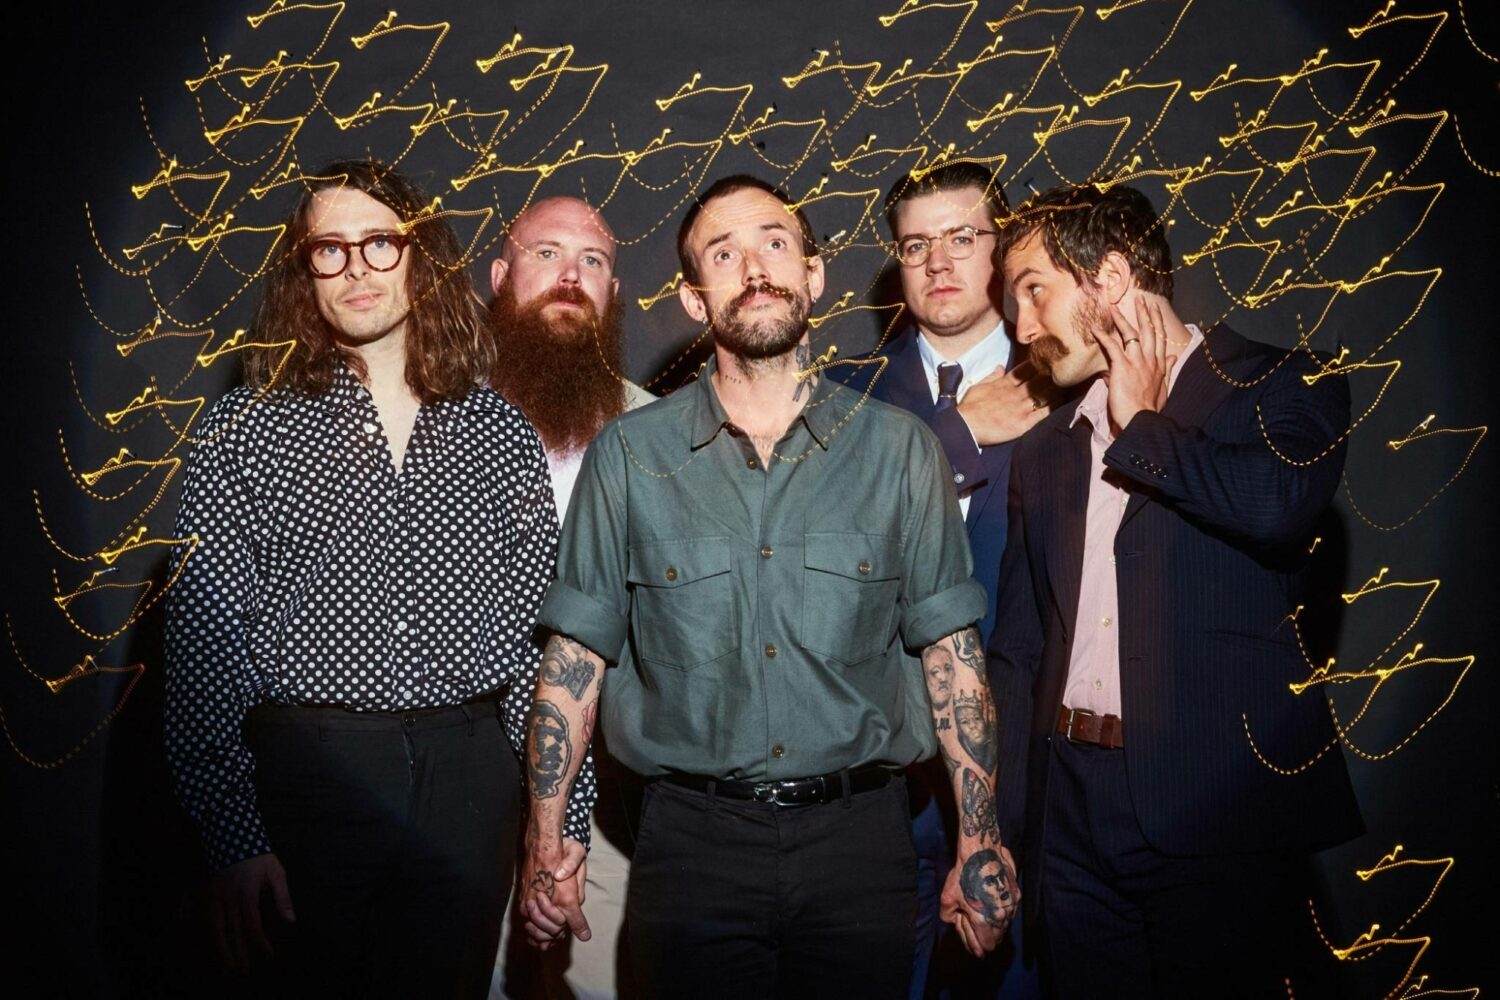 IDLES reveal 'Kill Them With Kindness' video